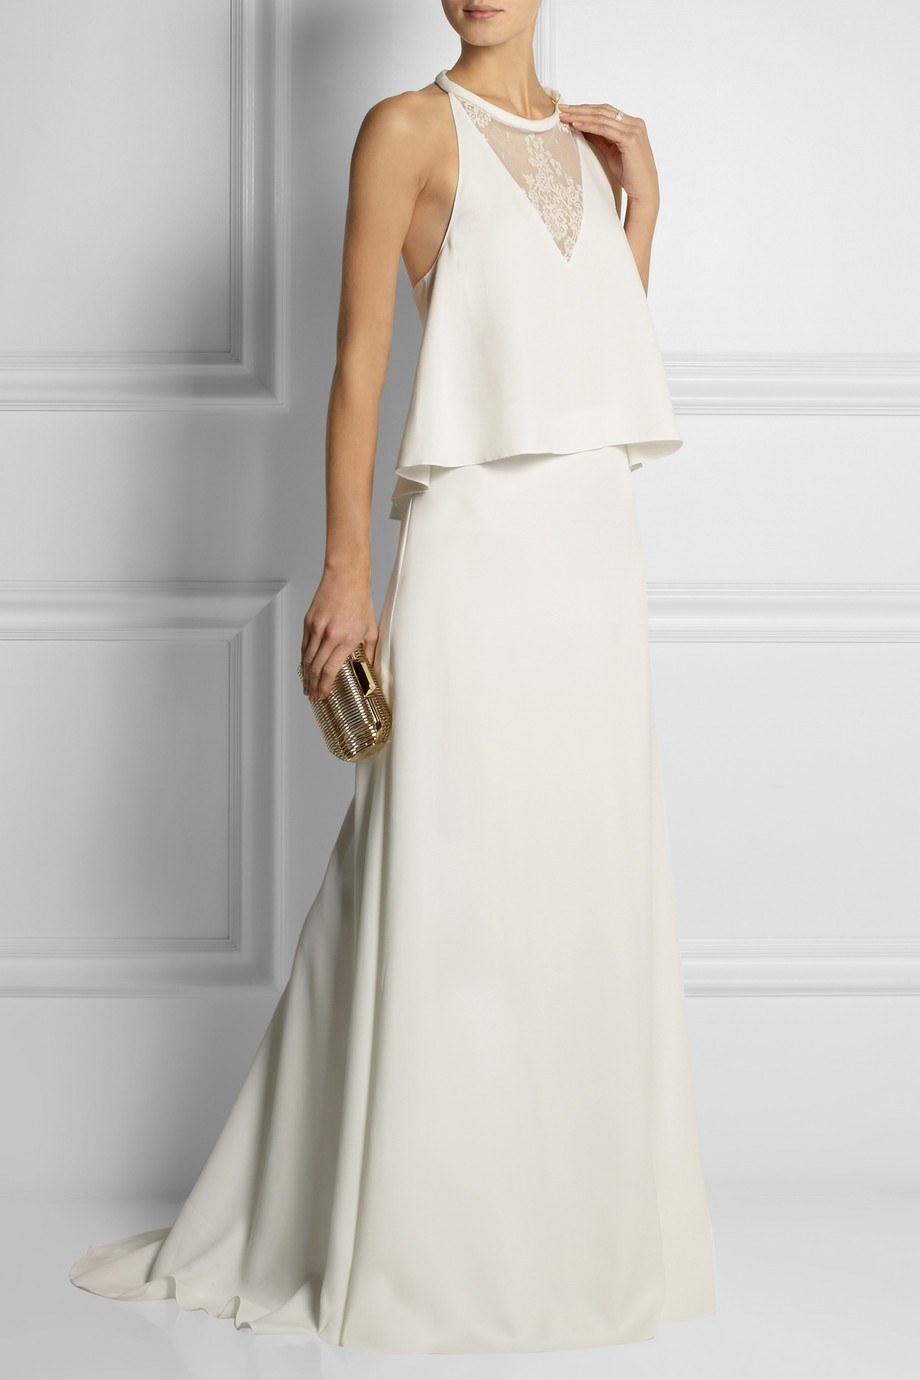 Rime Arodaky two piece gown via Net-a-Porter